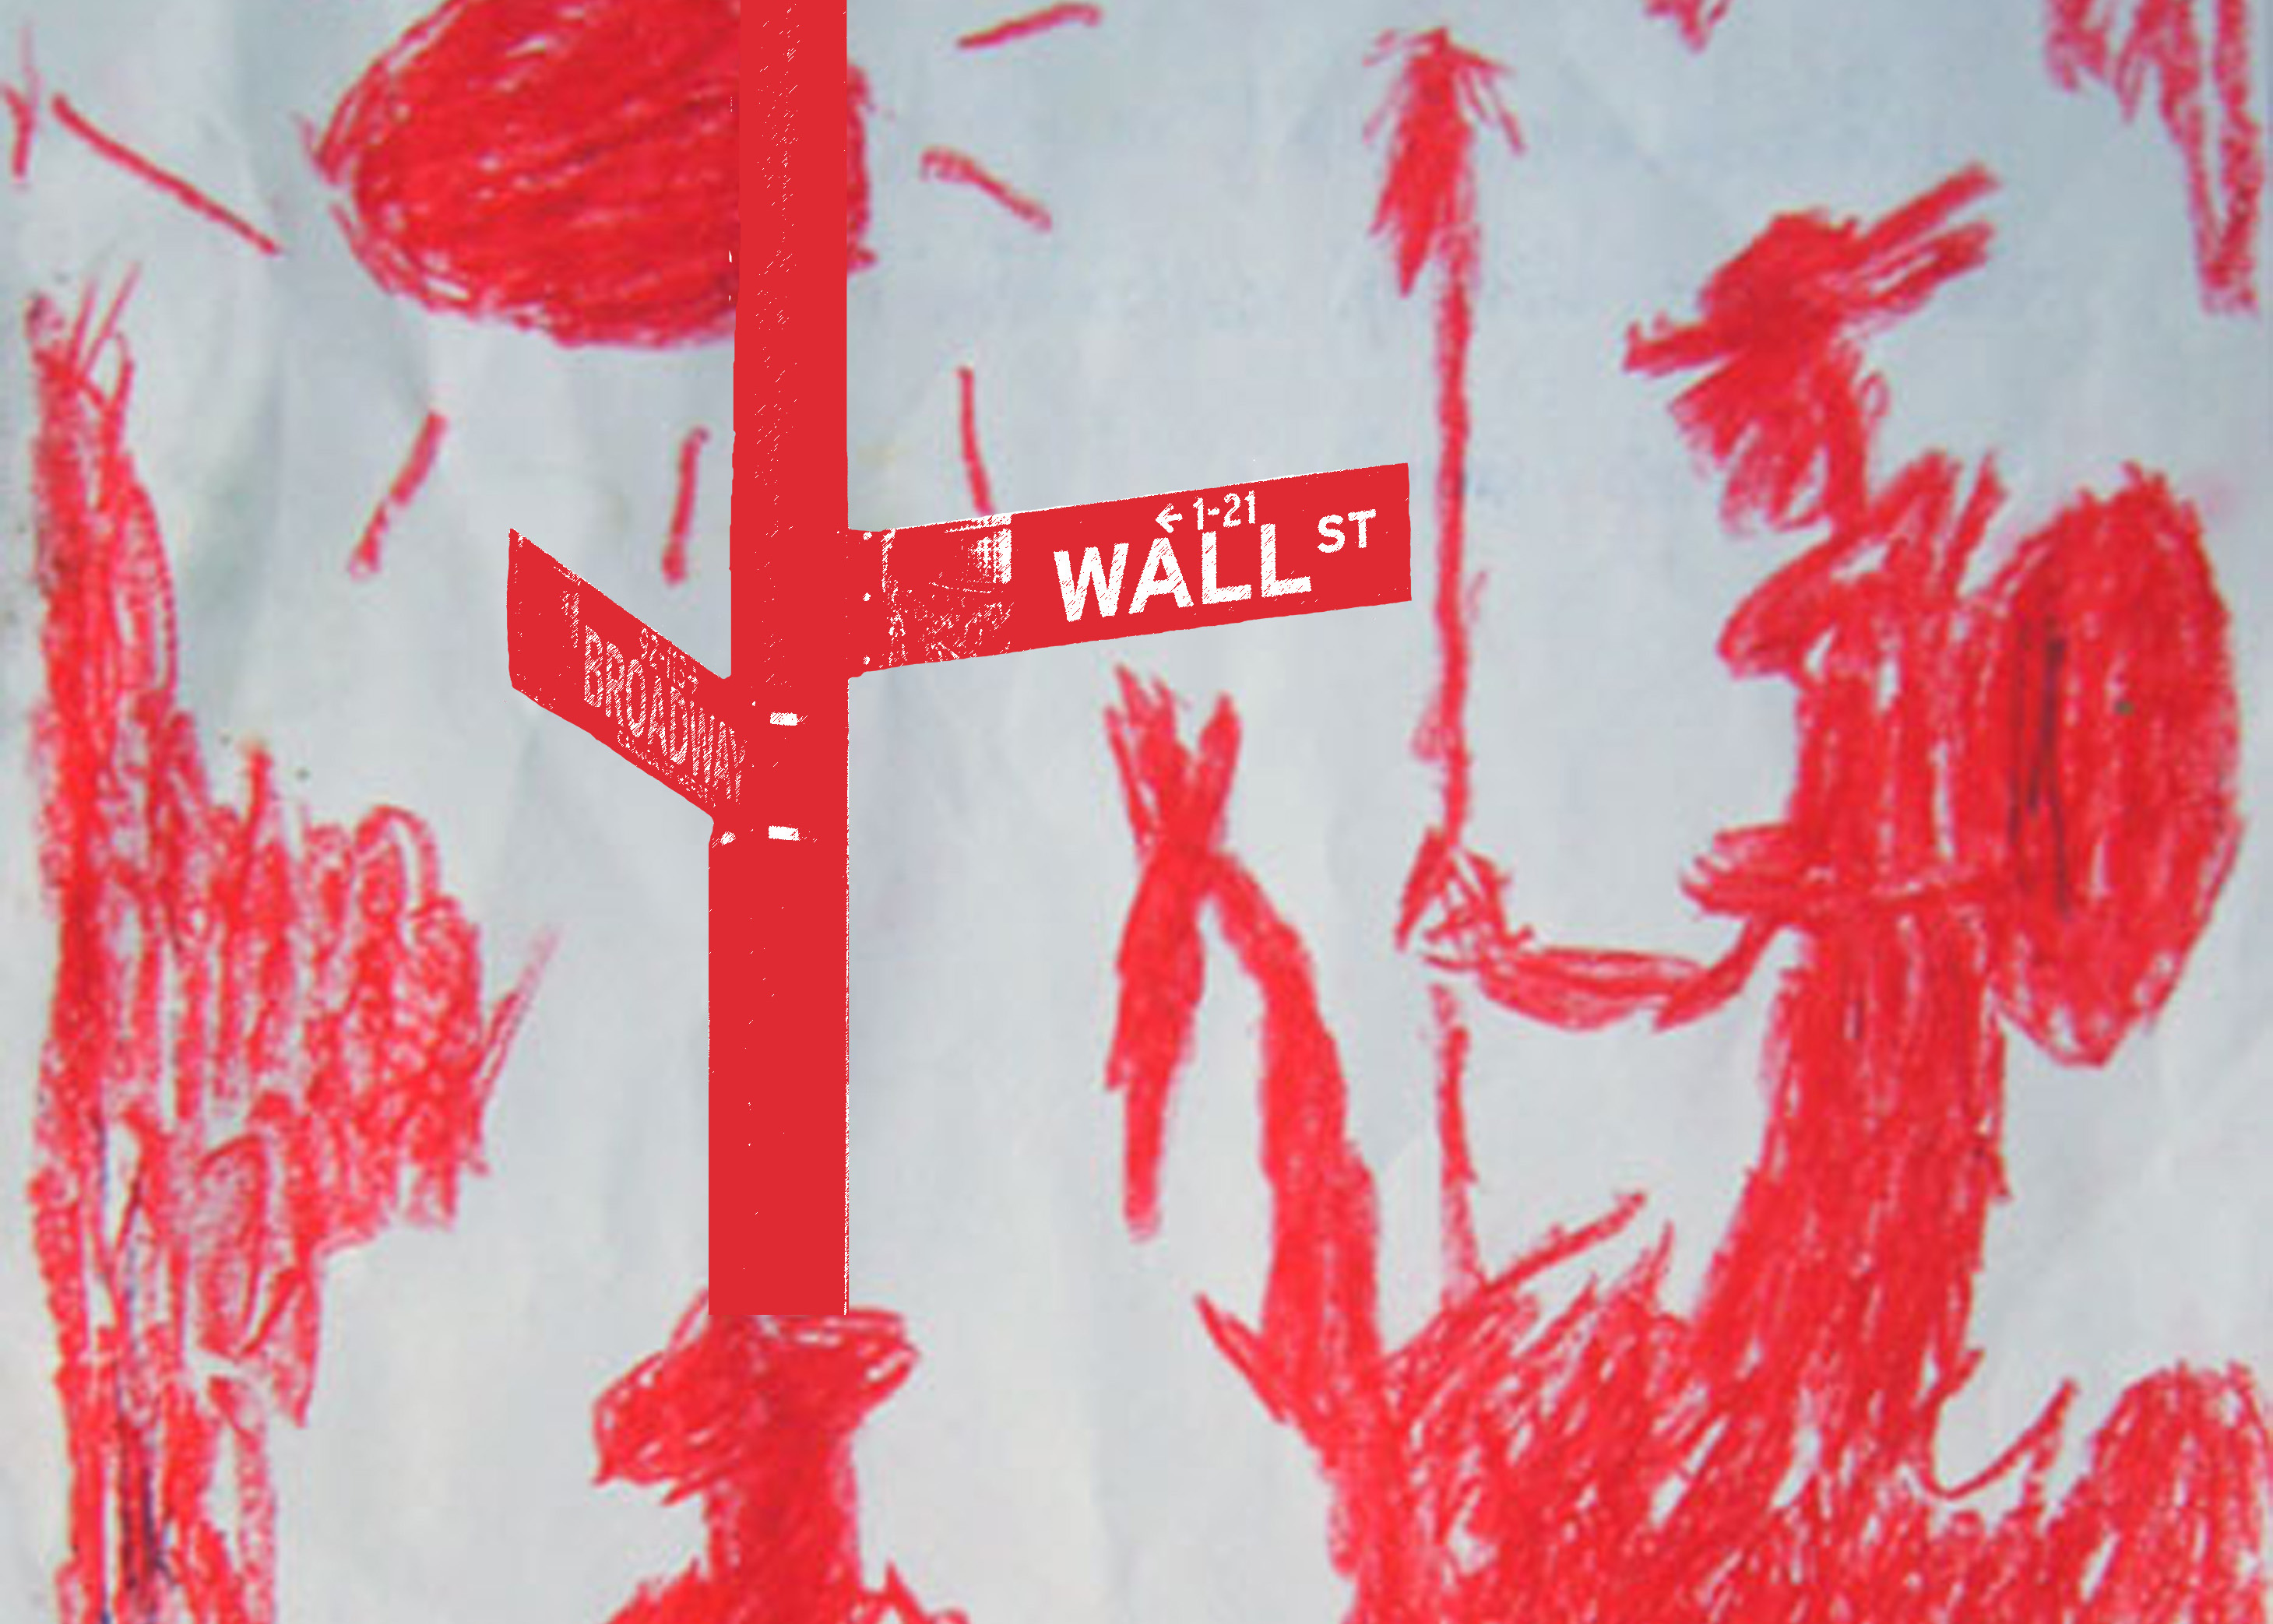 Don Quixote_Red_Horse_Cross_Continent and Wall Street Red Featured